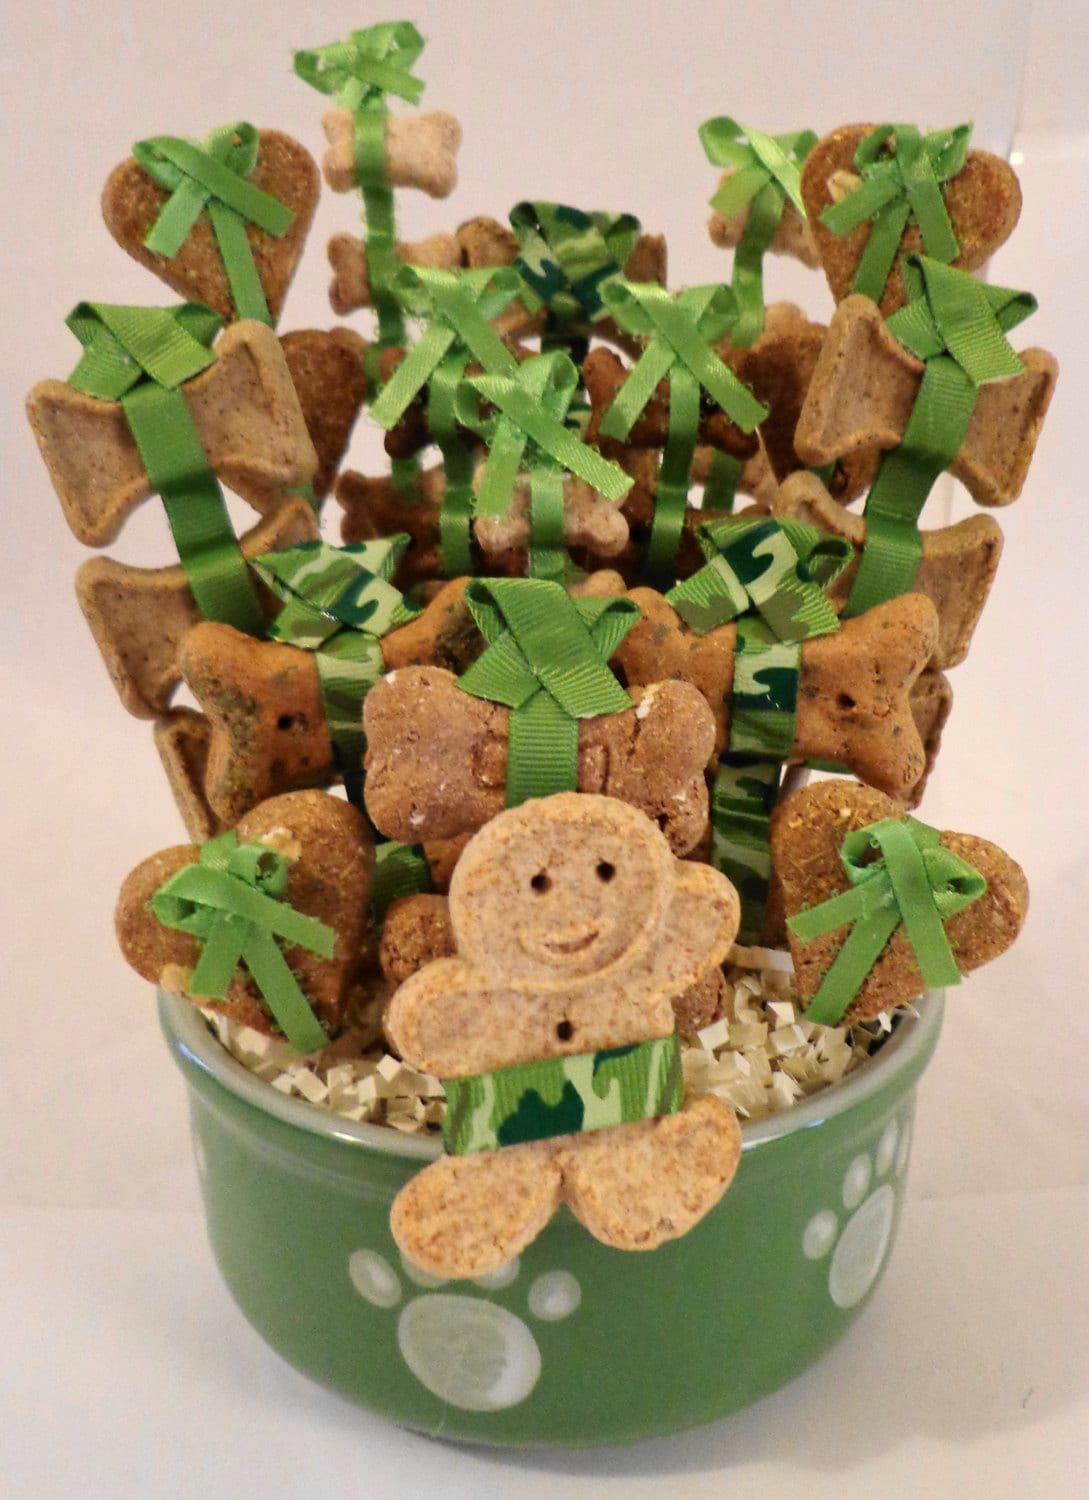 Dog Birthday Gift Baskets : Dog biscuit treat gift basket in green bowl by